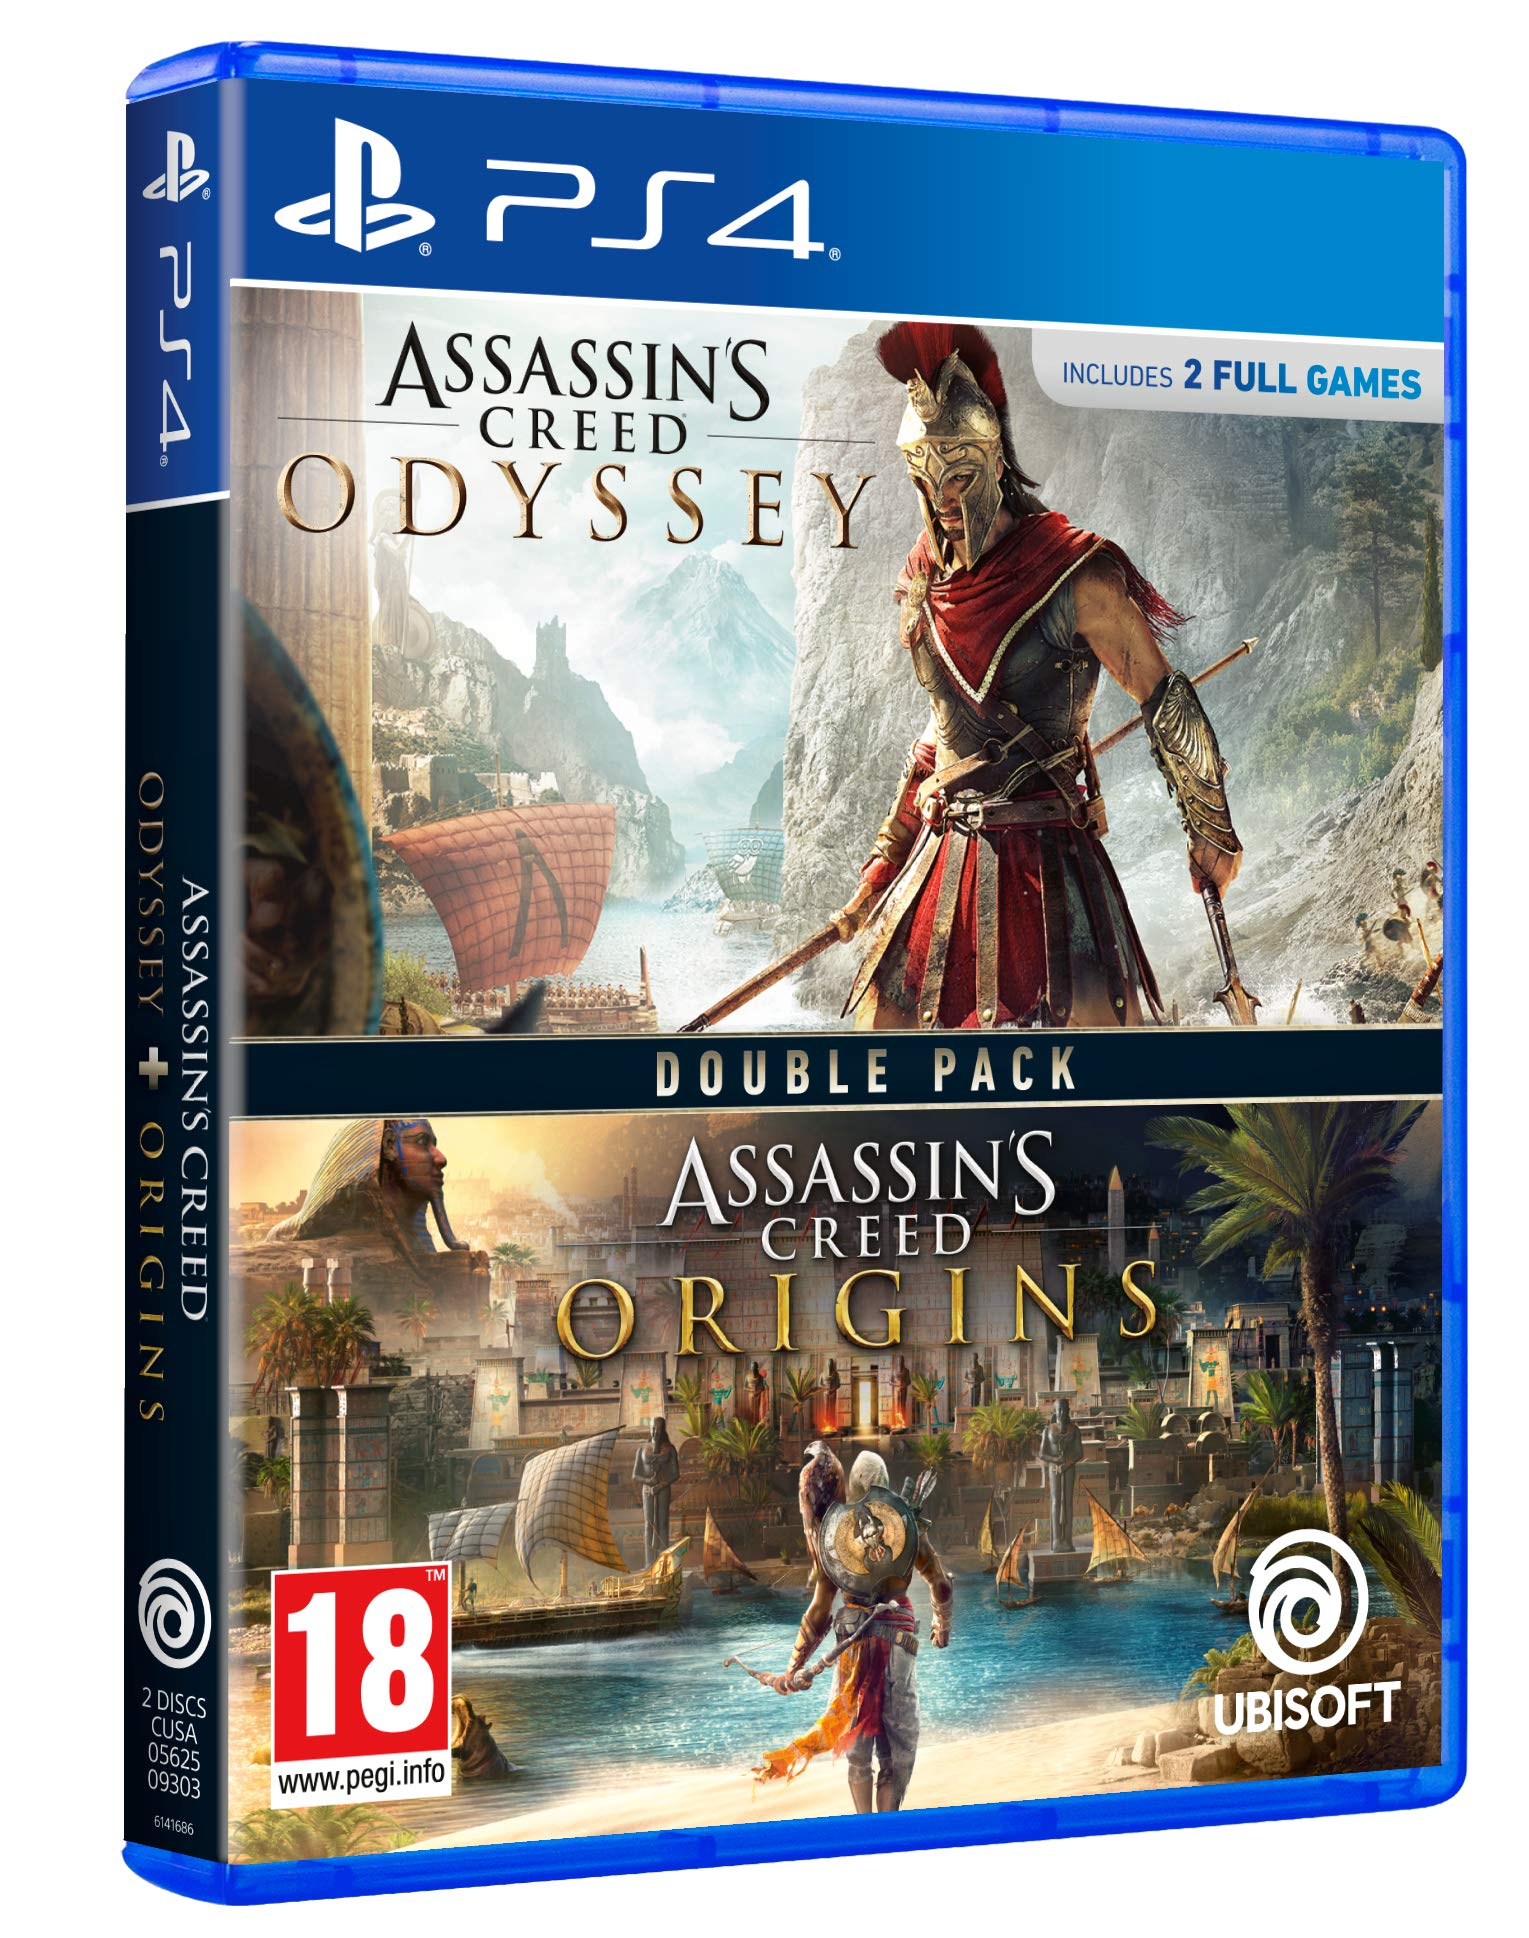 Double Pack: Assassins Creed Odyssey + Assassins Creed Origins ...